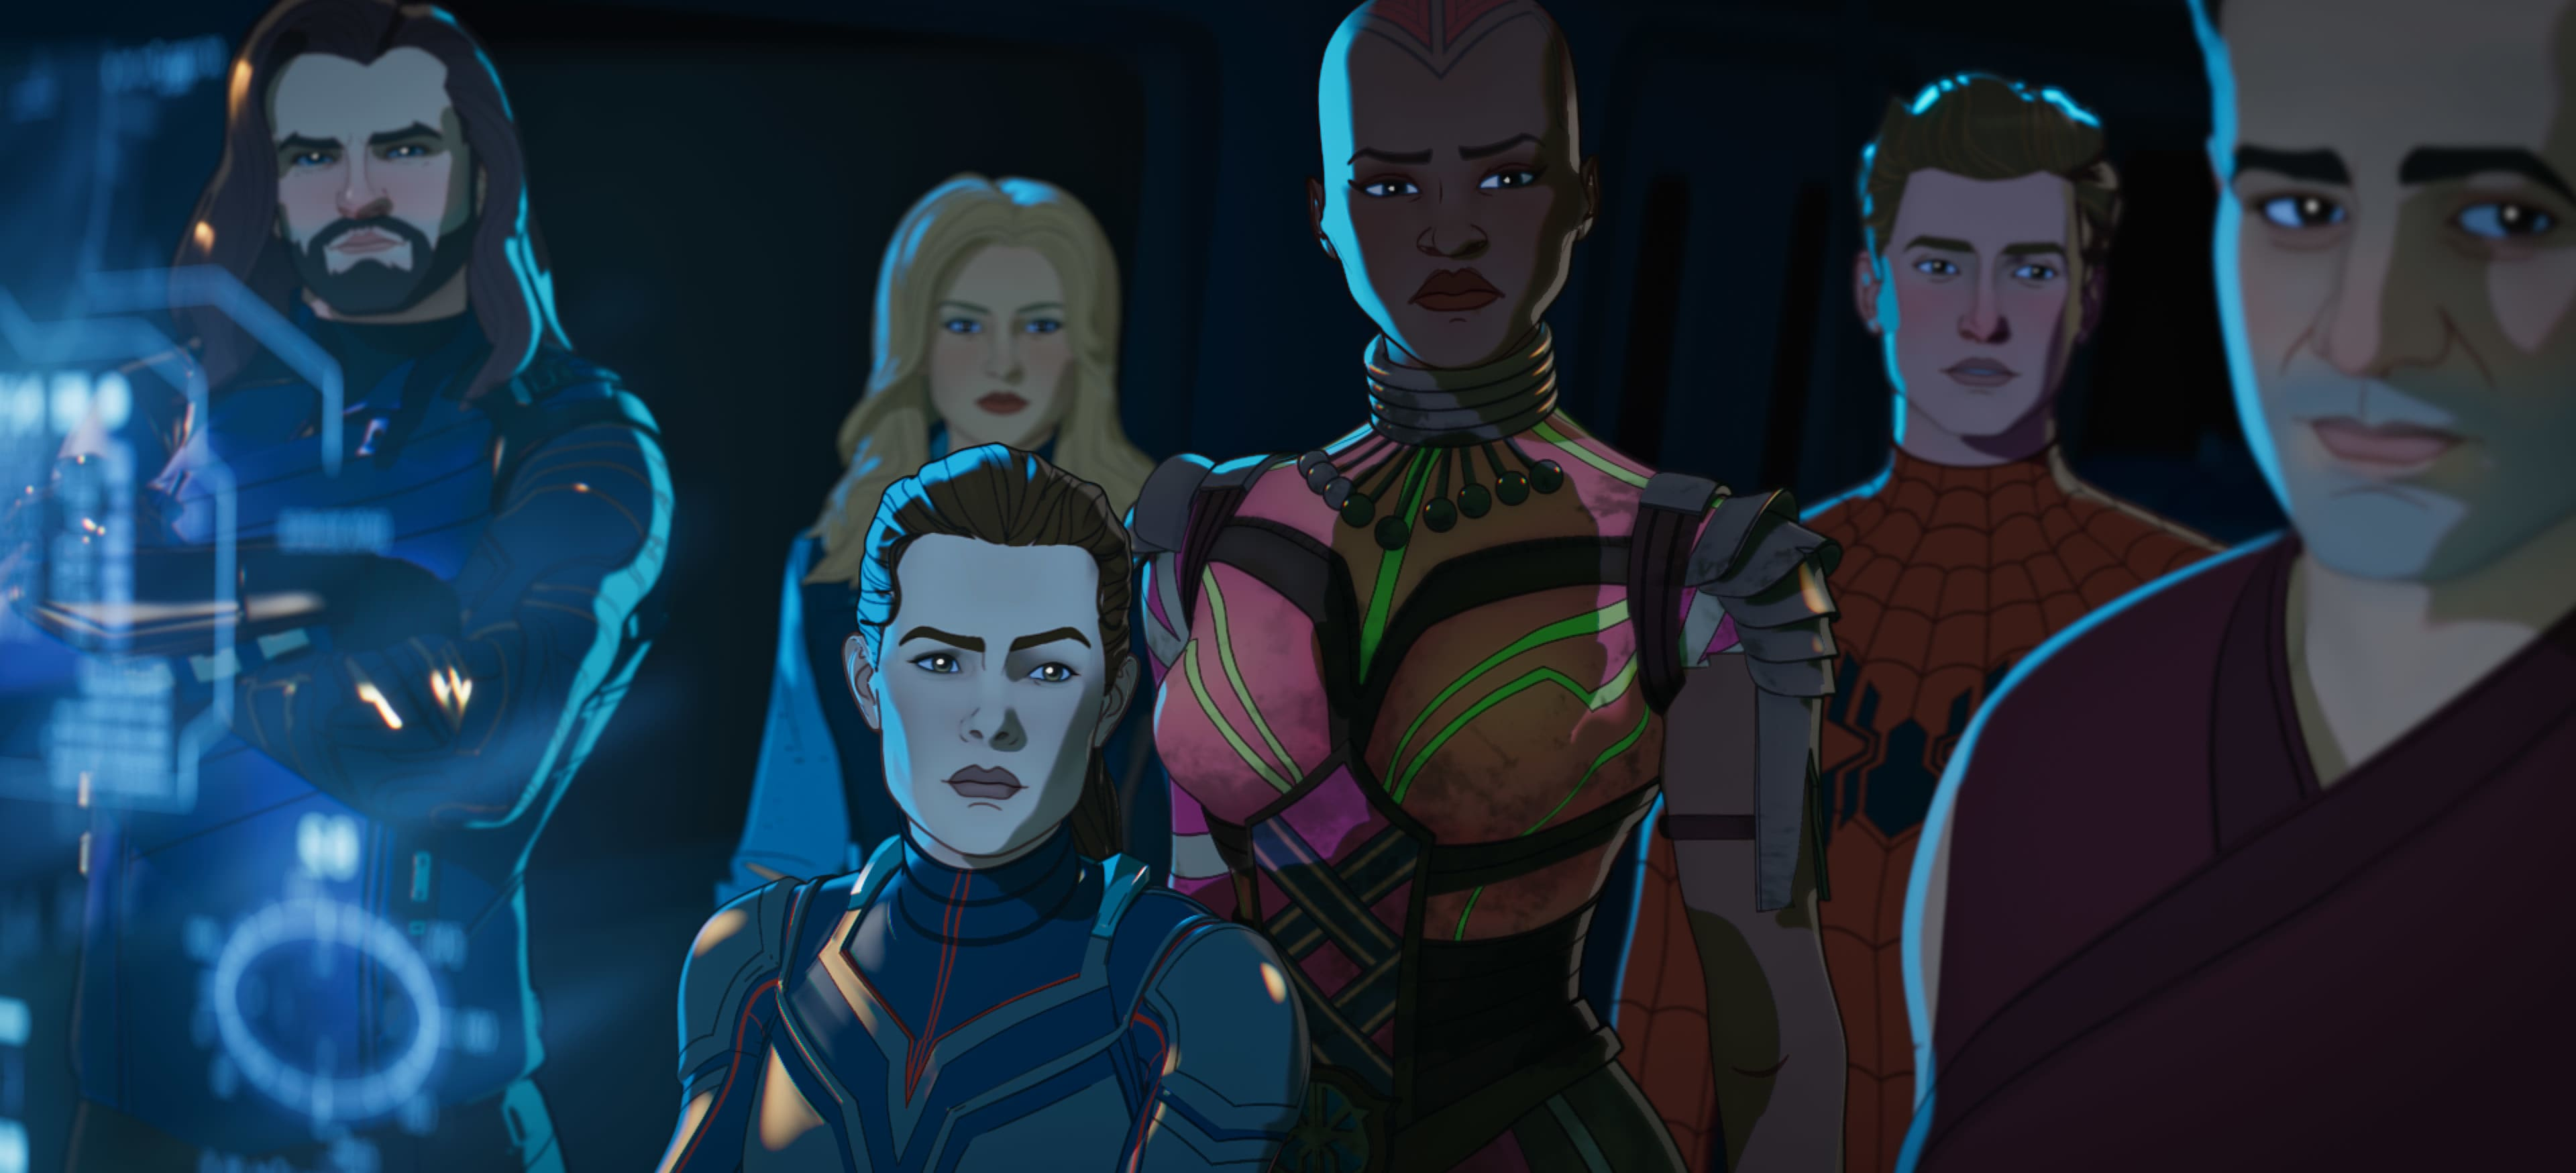 (L-R): Bucky Barnes, Sharon Carter, The Wasp/Hope Van Dyne, Okoye, Zombie Hunter Spider-Man/Peter Parker and Bruce Banner in Marvel Studios' WHAT IF…? exclusively on Disney+. ©Marvel Studios 2021. All Rights Reserved.